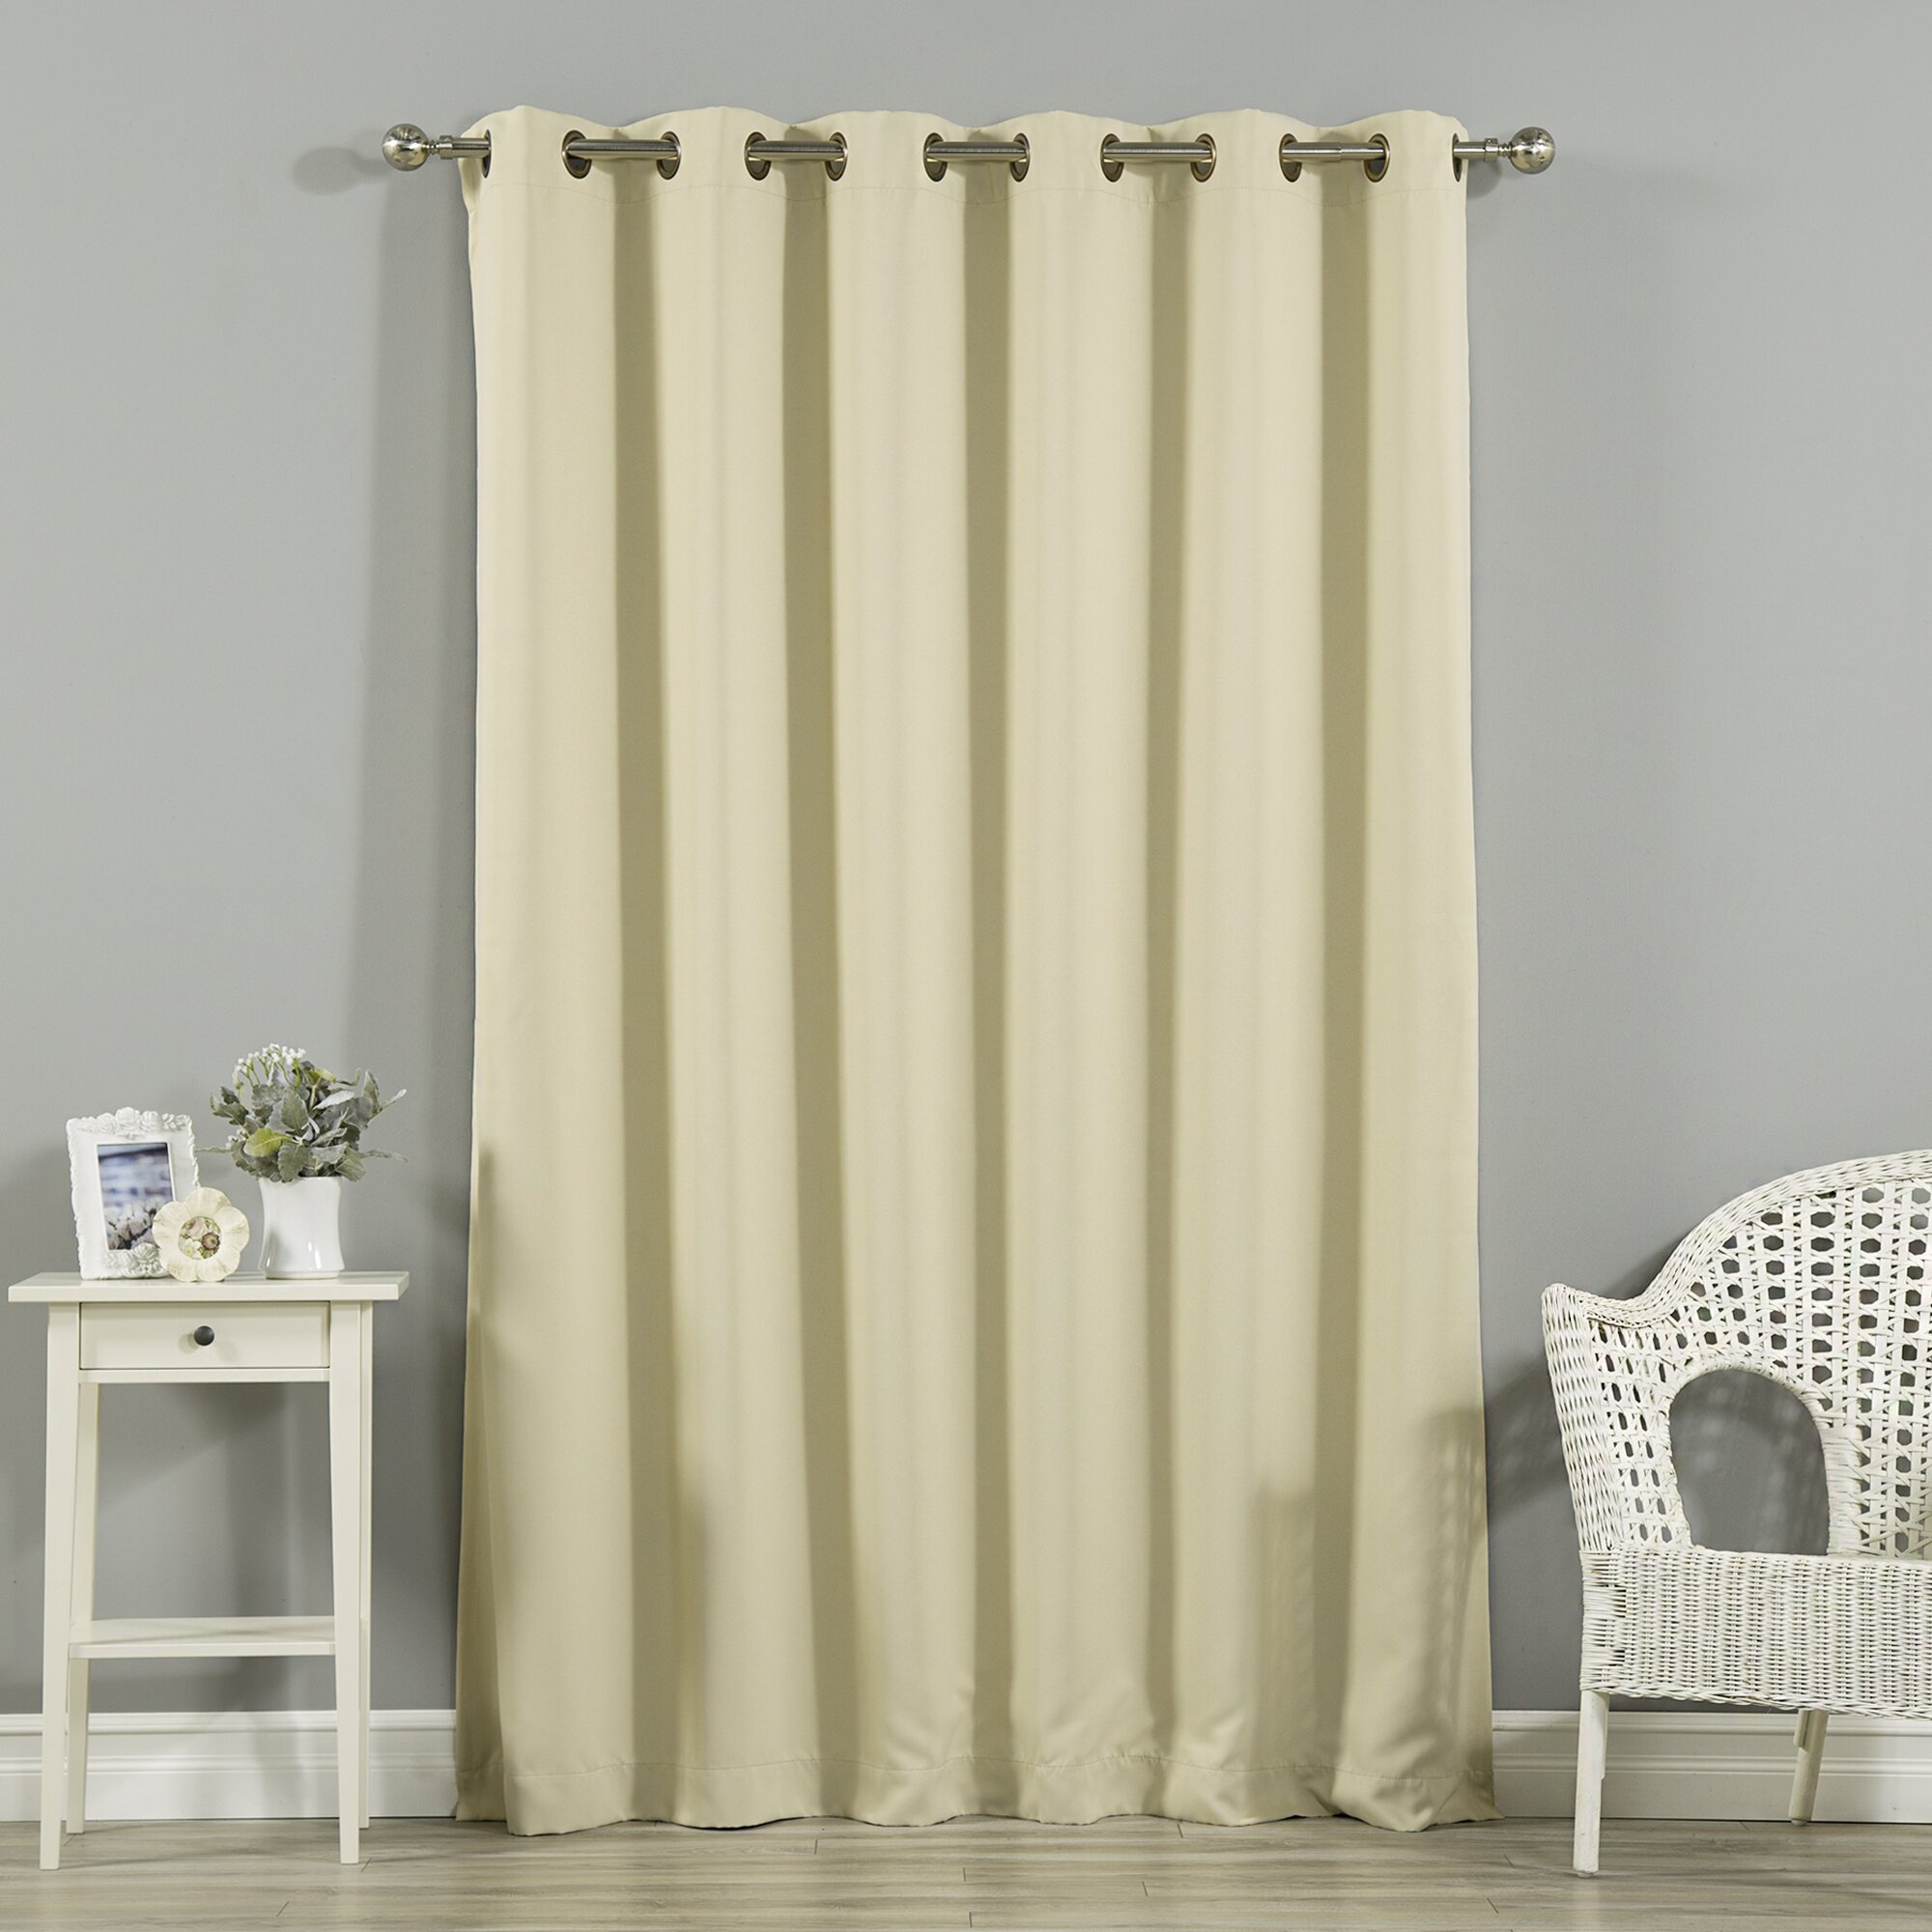 Modern grommet top curtains - Scarsdale Extra Solid Blackout Thermal Grommet Single Curtain Panel